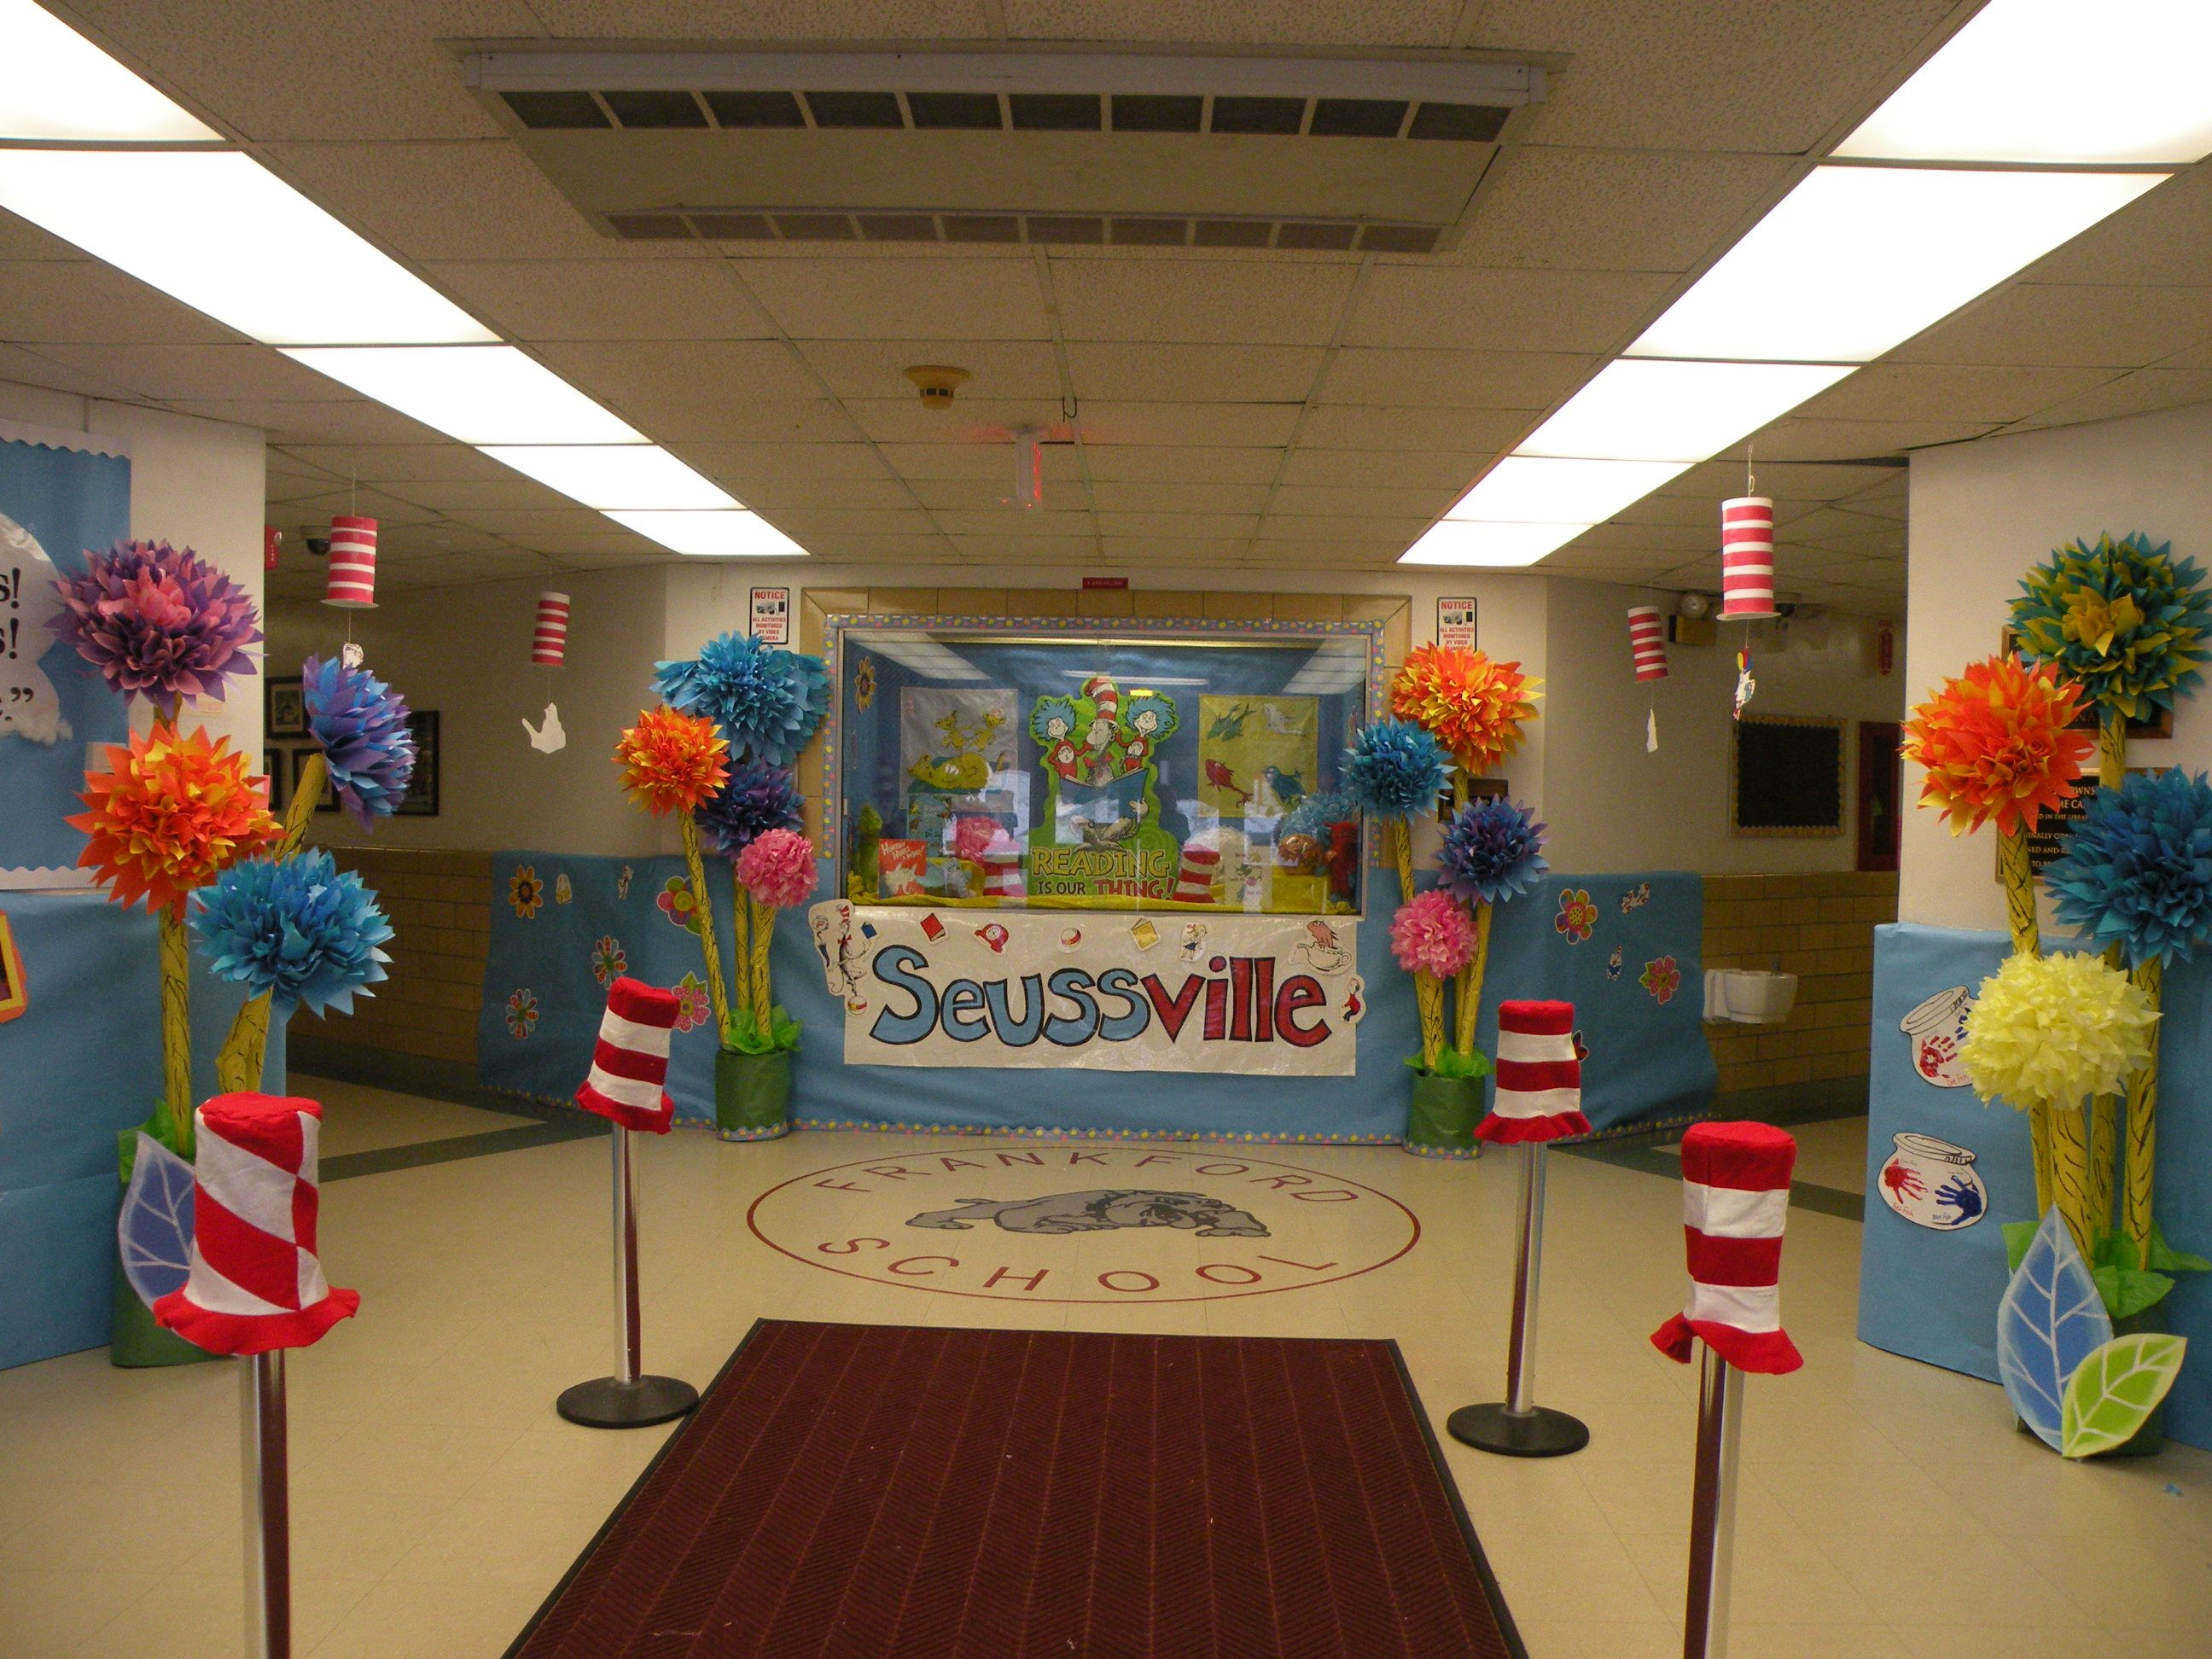 Lobby Decoration Ideas Frankford Township School Lobby Decorated For Love Of